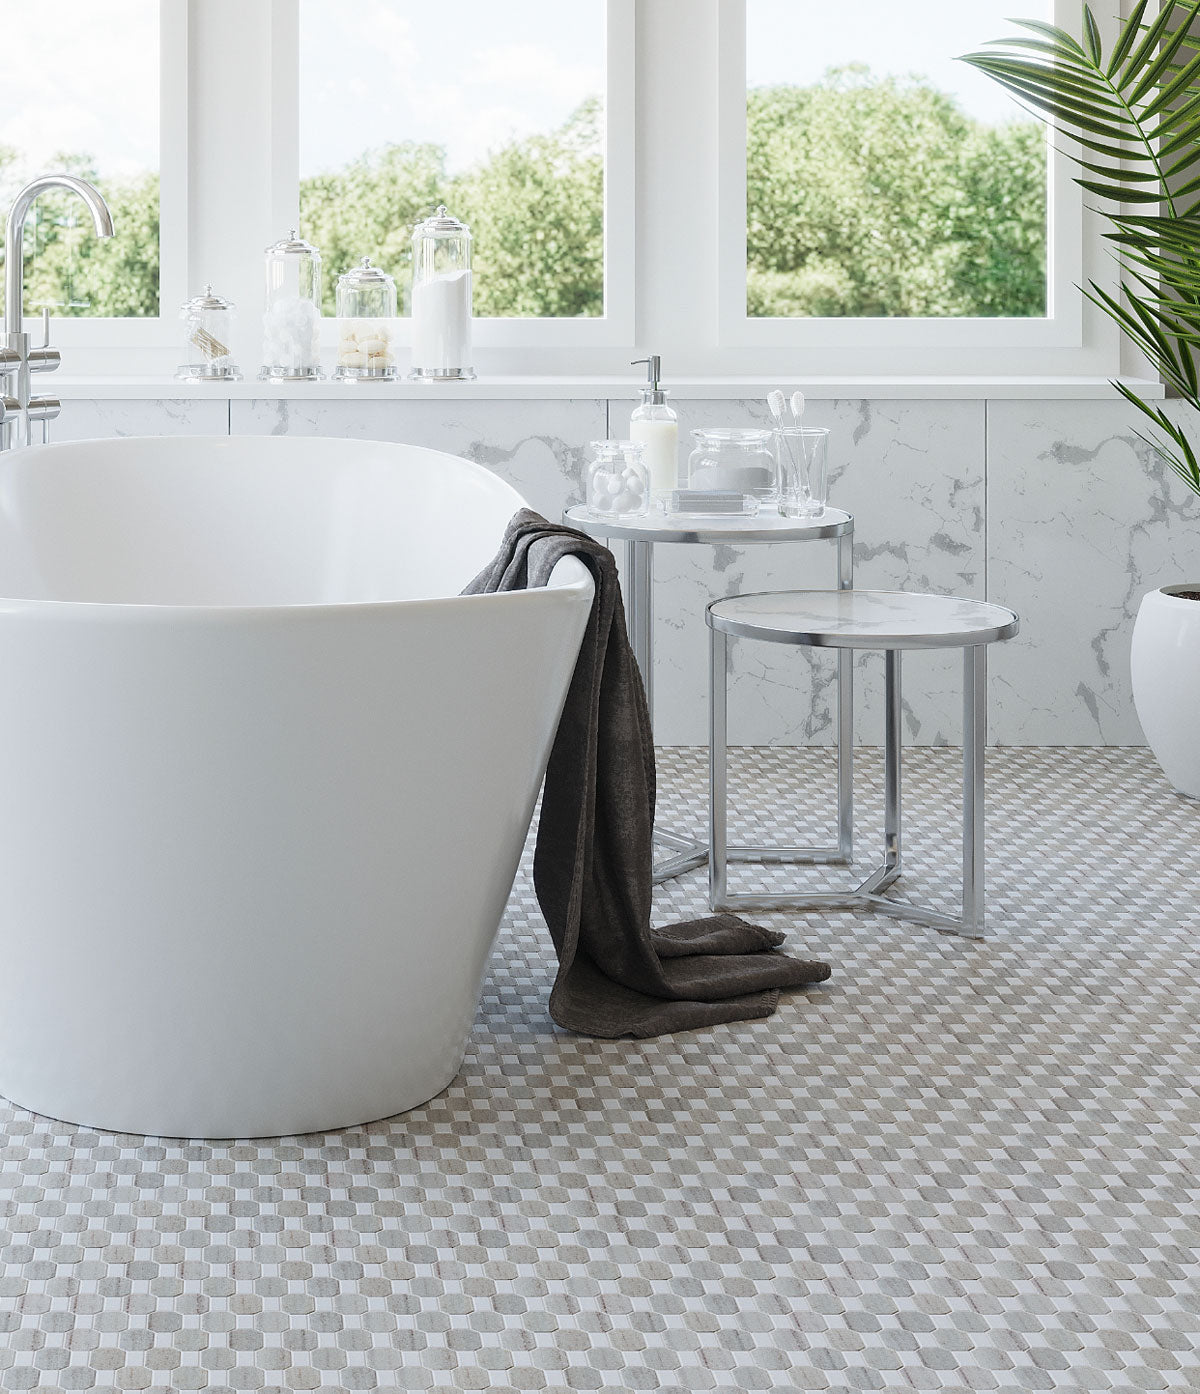 Step out of the tub and into comfort with heated marble bathroom floors!